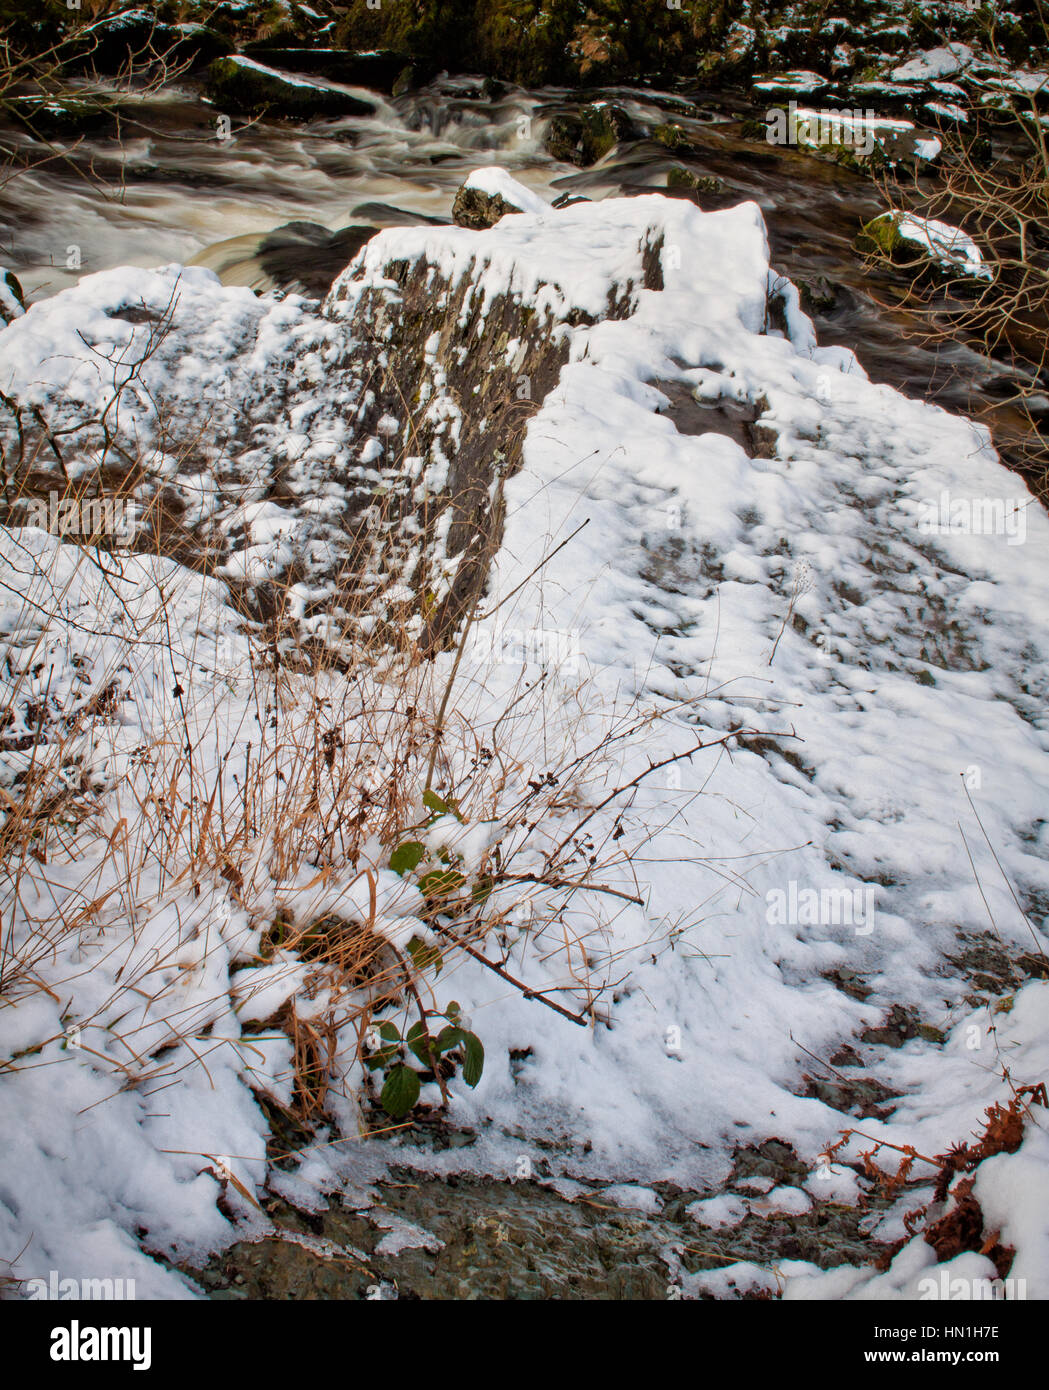 grasses in winter snow, at Ingleton - Stock Image